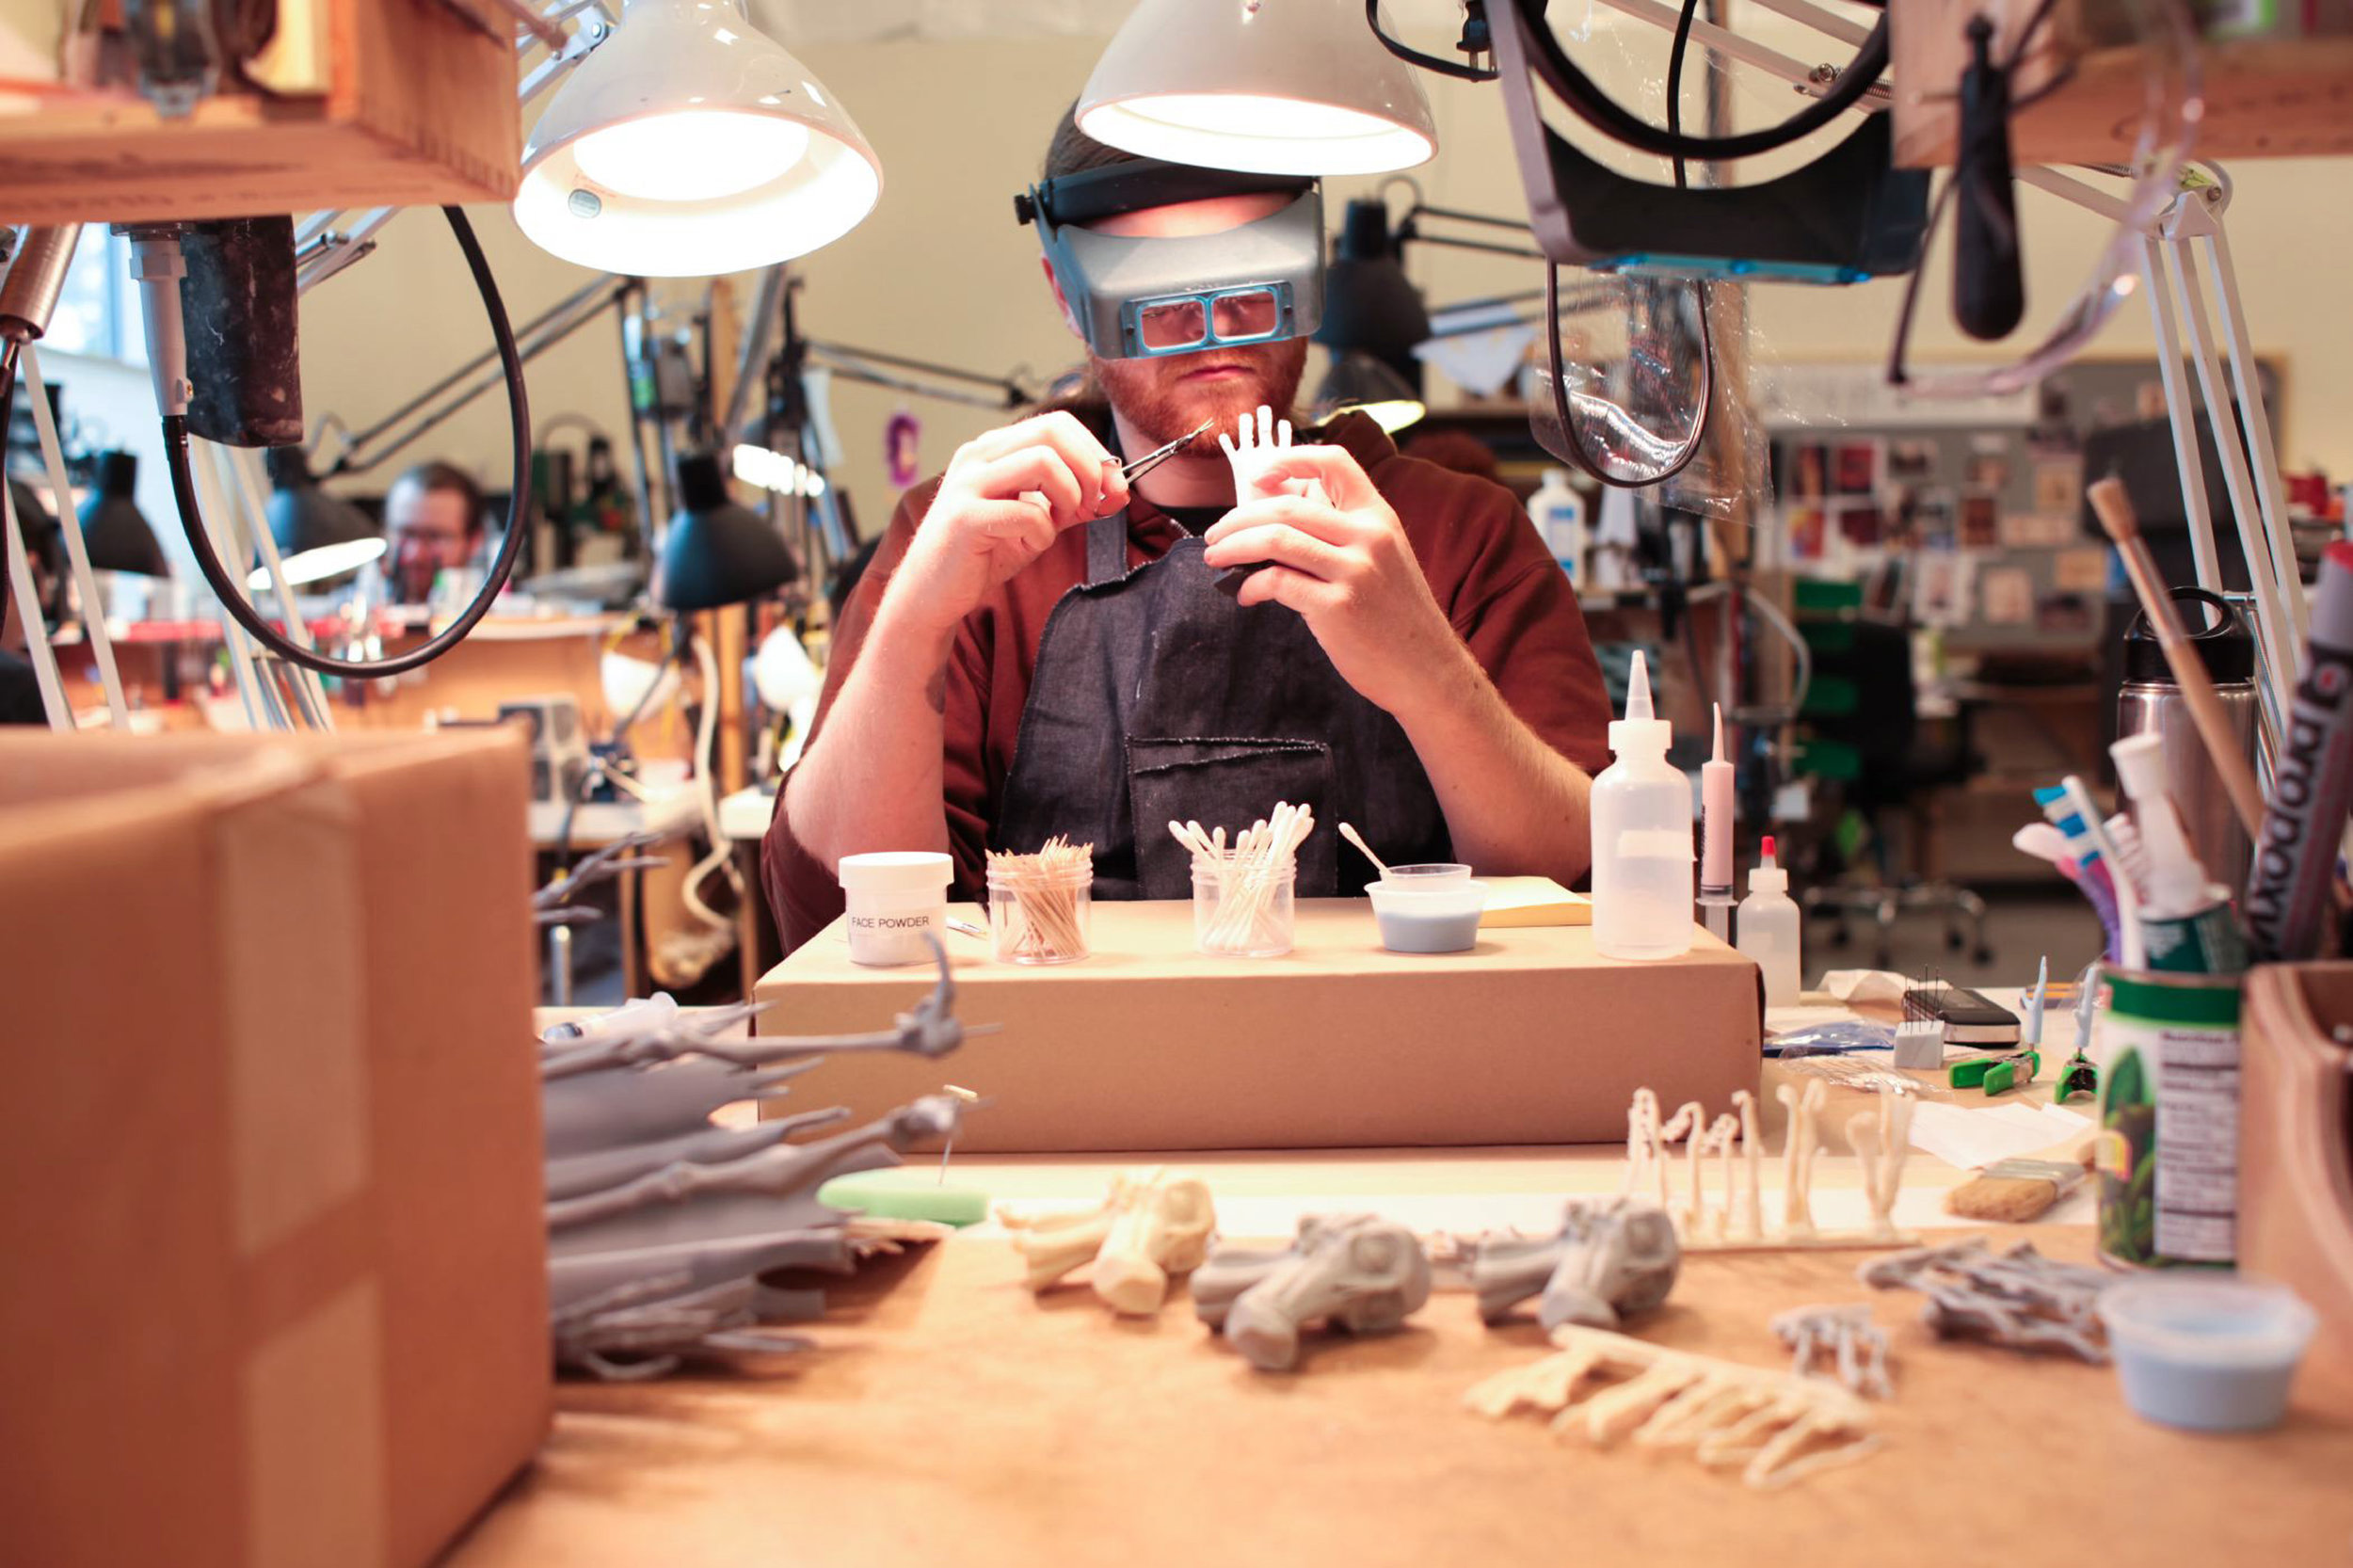 Aaron Matthews carefully paints details on a hand for ParaNorman, the new 3D stop-motion comedy thriller.  Credit: LAIKA, Inc.